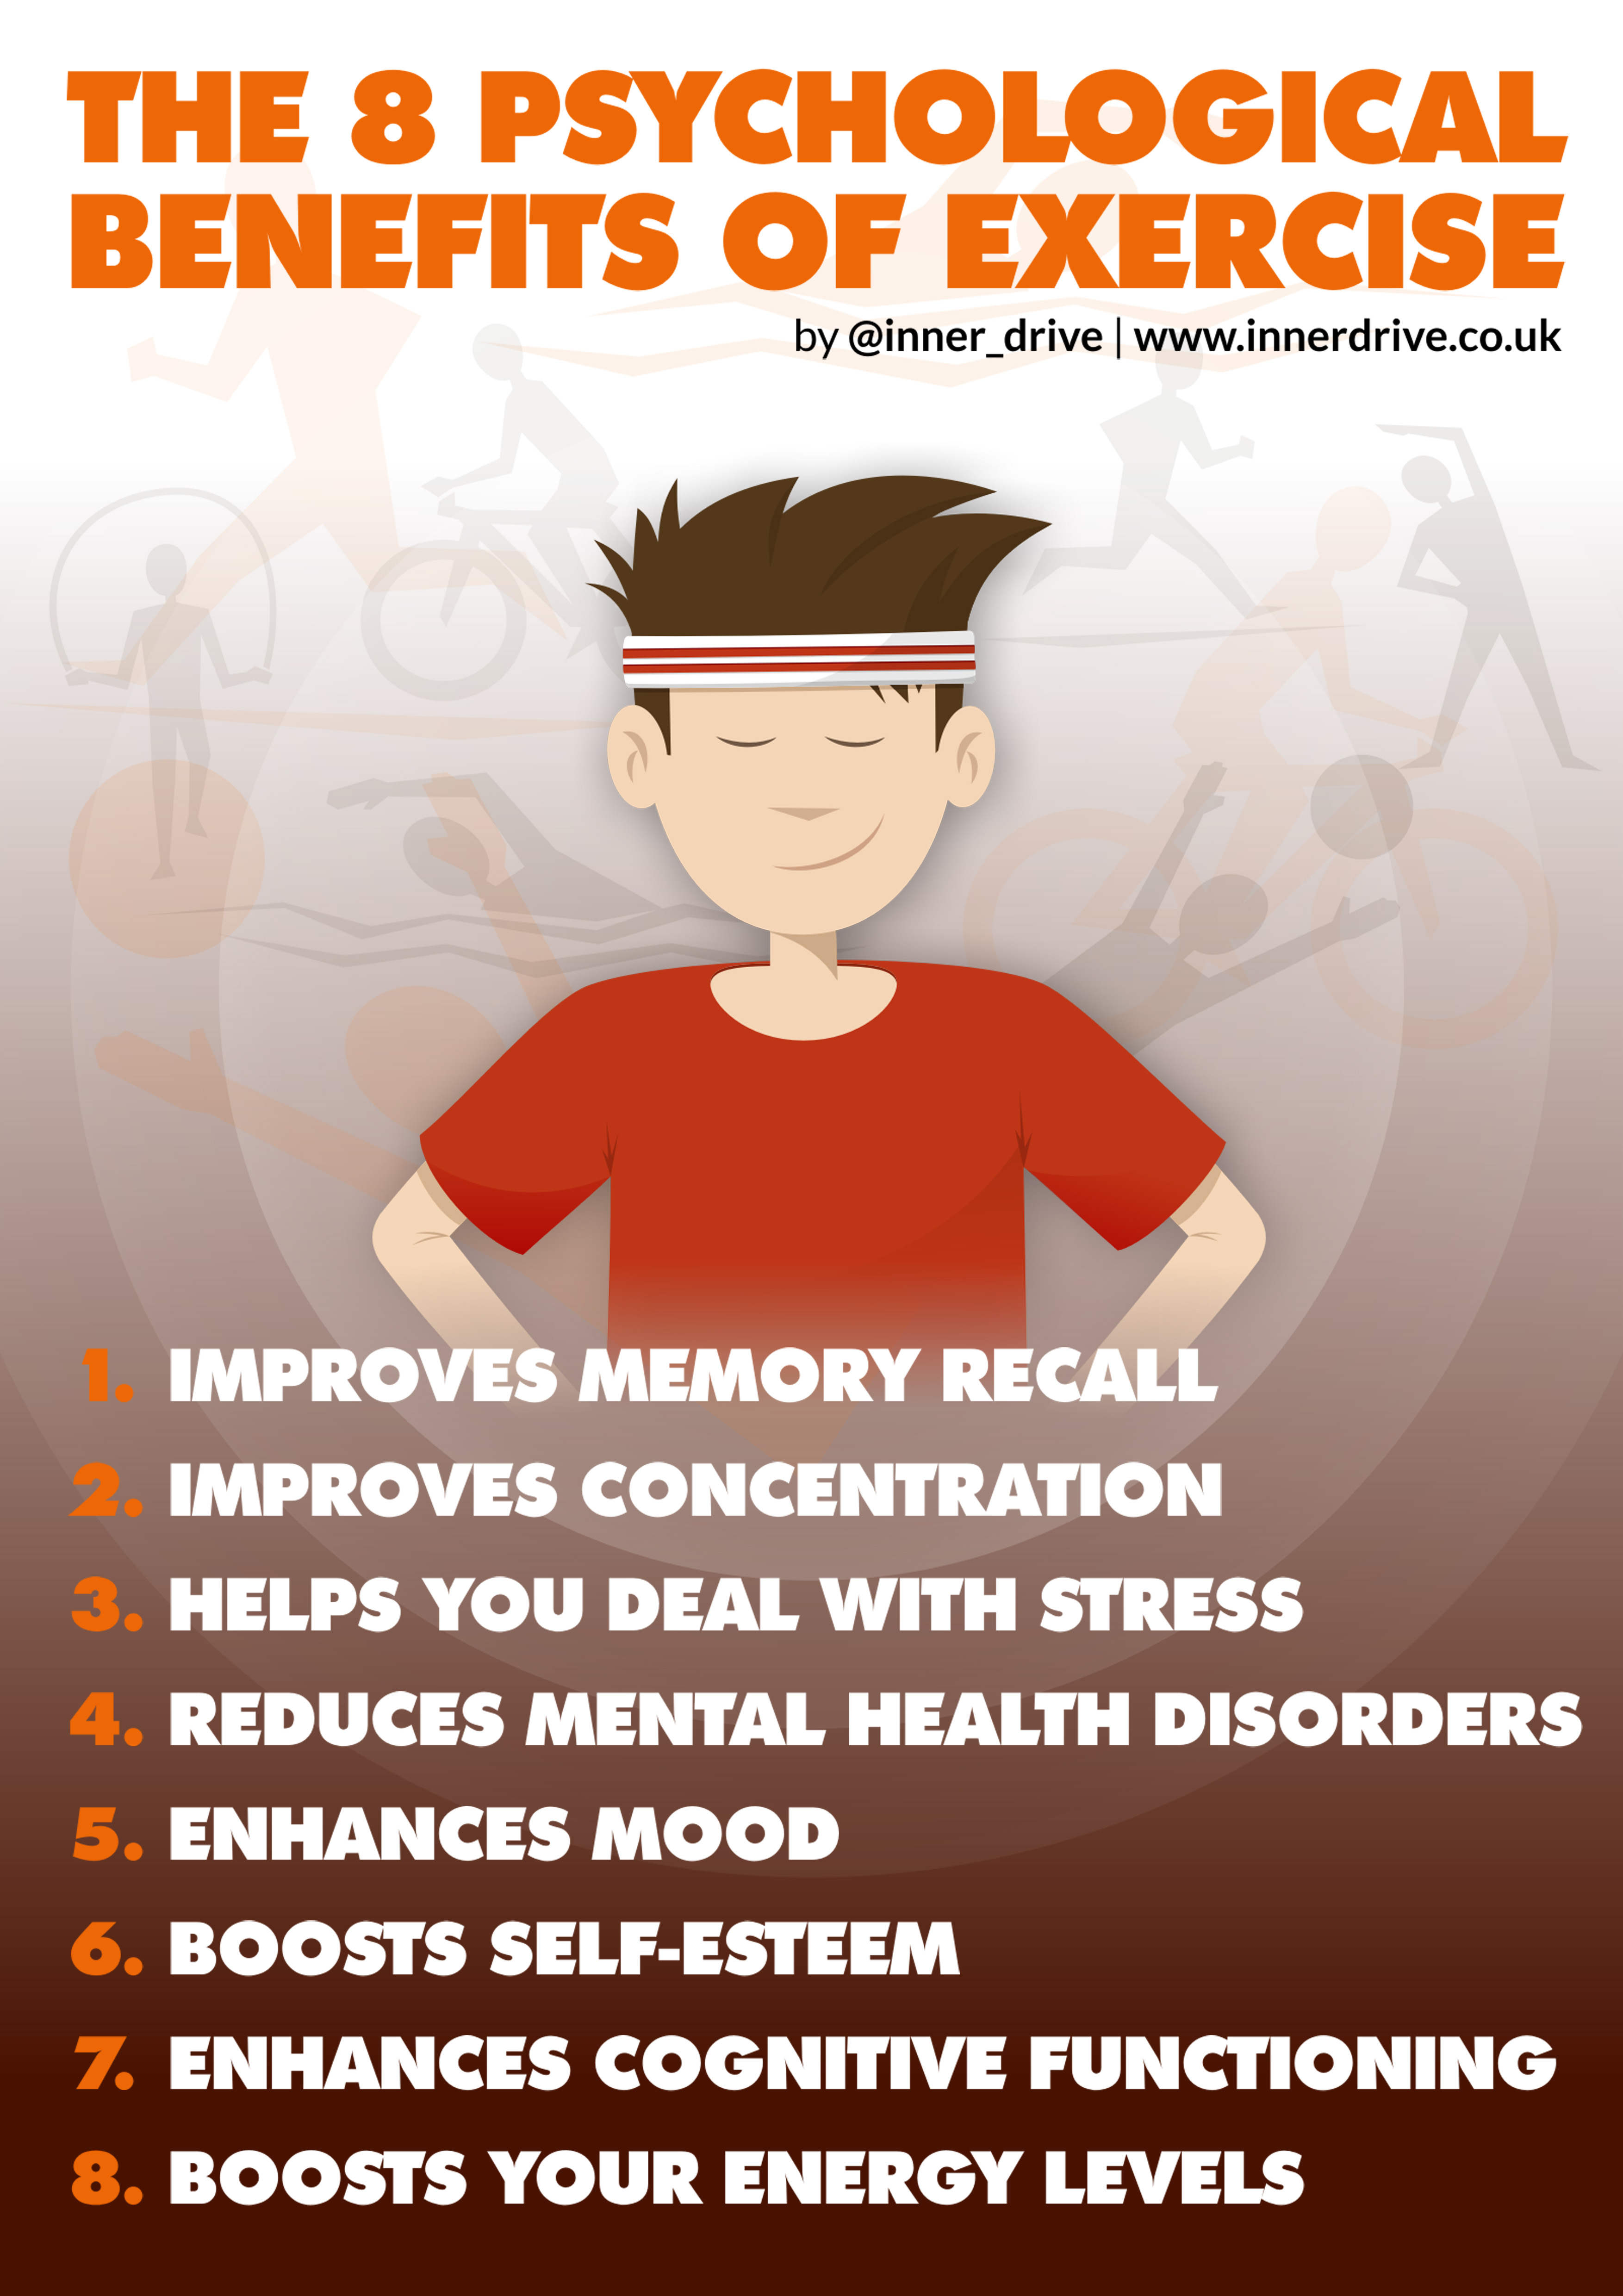 psychological benefits of exercise What are the psychological benefits of exercise with depression improved self-esteem is a key psychological benefit of regular physical activity when you exercise, your body releases chemicals called endorphins these endorphins interact with the receptors in your brain that reduce your perception of pain.